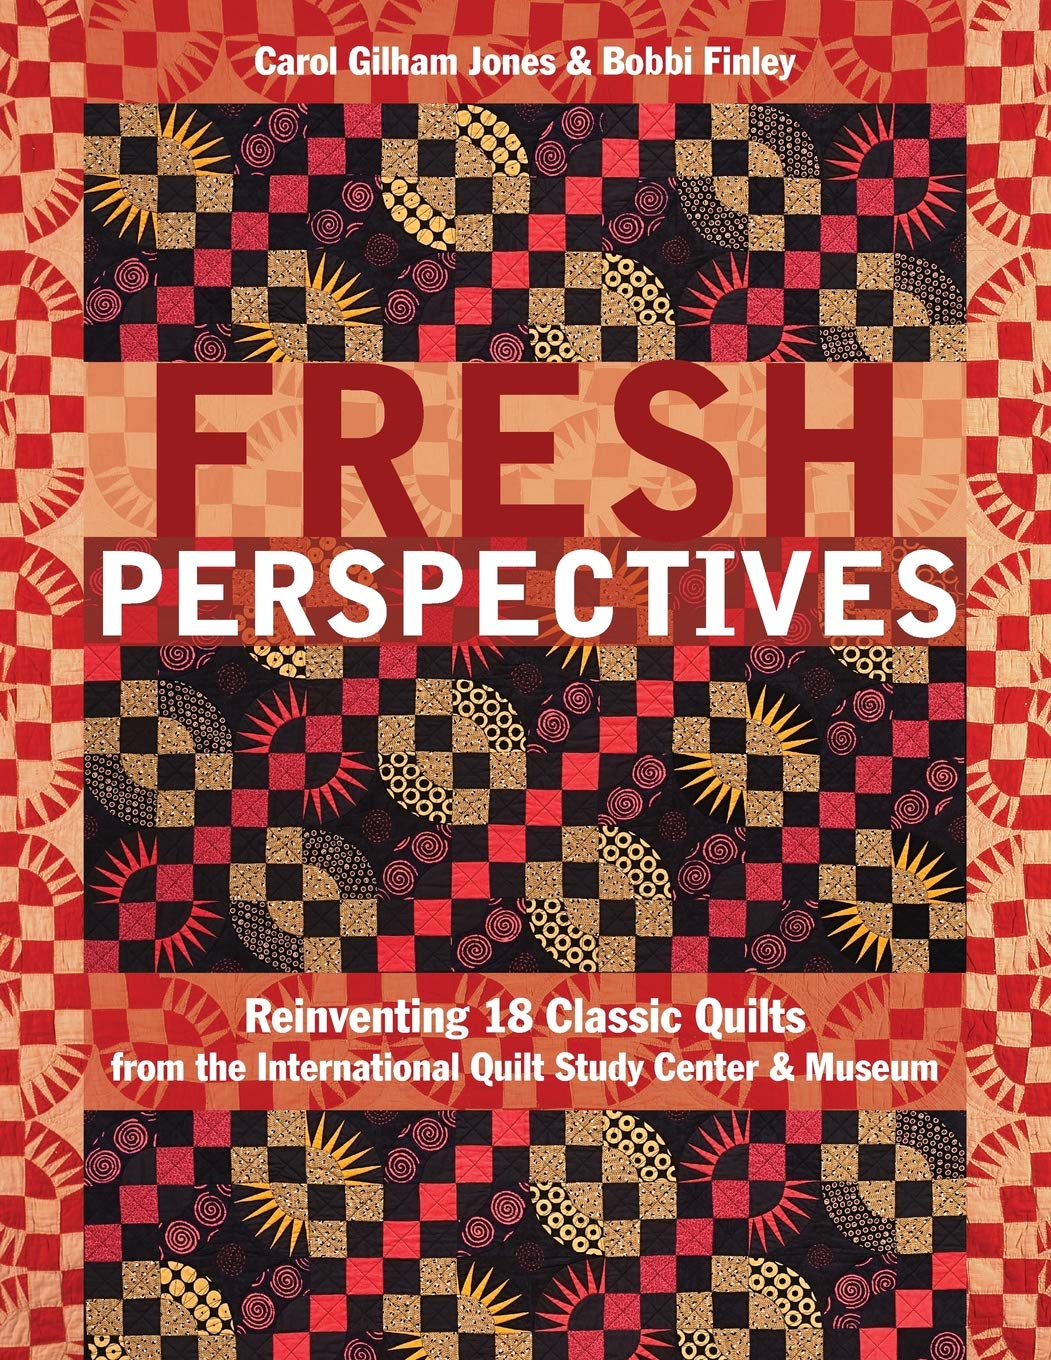 Fresh Perspectives: Reinventing 18 Classic Quilts from the International Quilt Study Center & Museum ebook